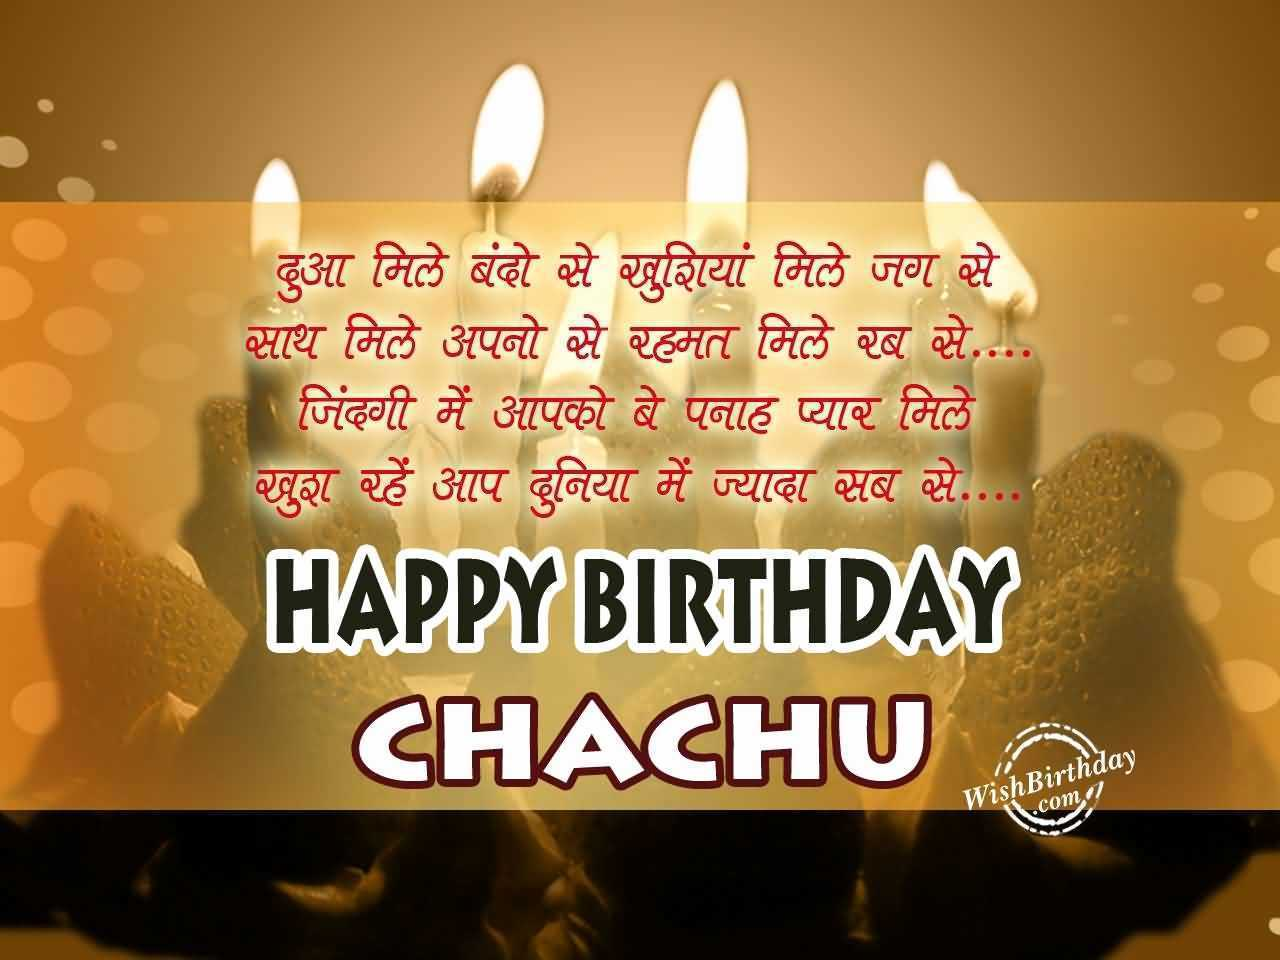 birthday card for chachu ; birthday-wishes-in-hindi-best-of-happy-birthday-chachu-ji-wish-in-hindi-nicewishes-of-birthday-wishes-in-hindi